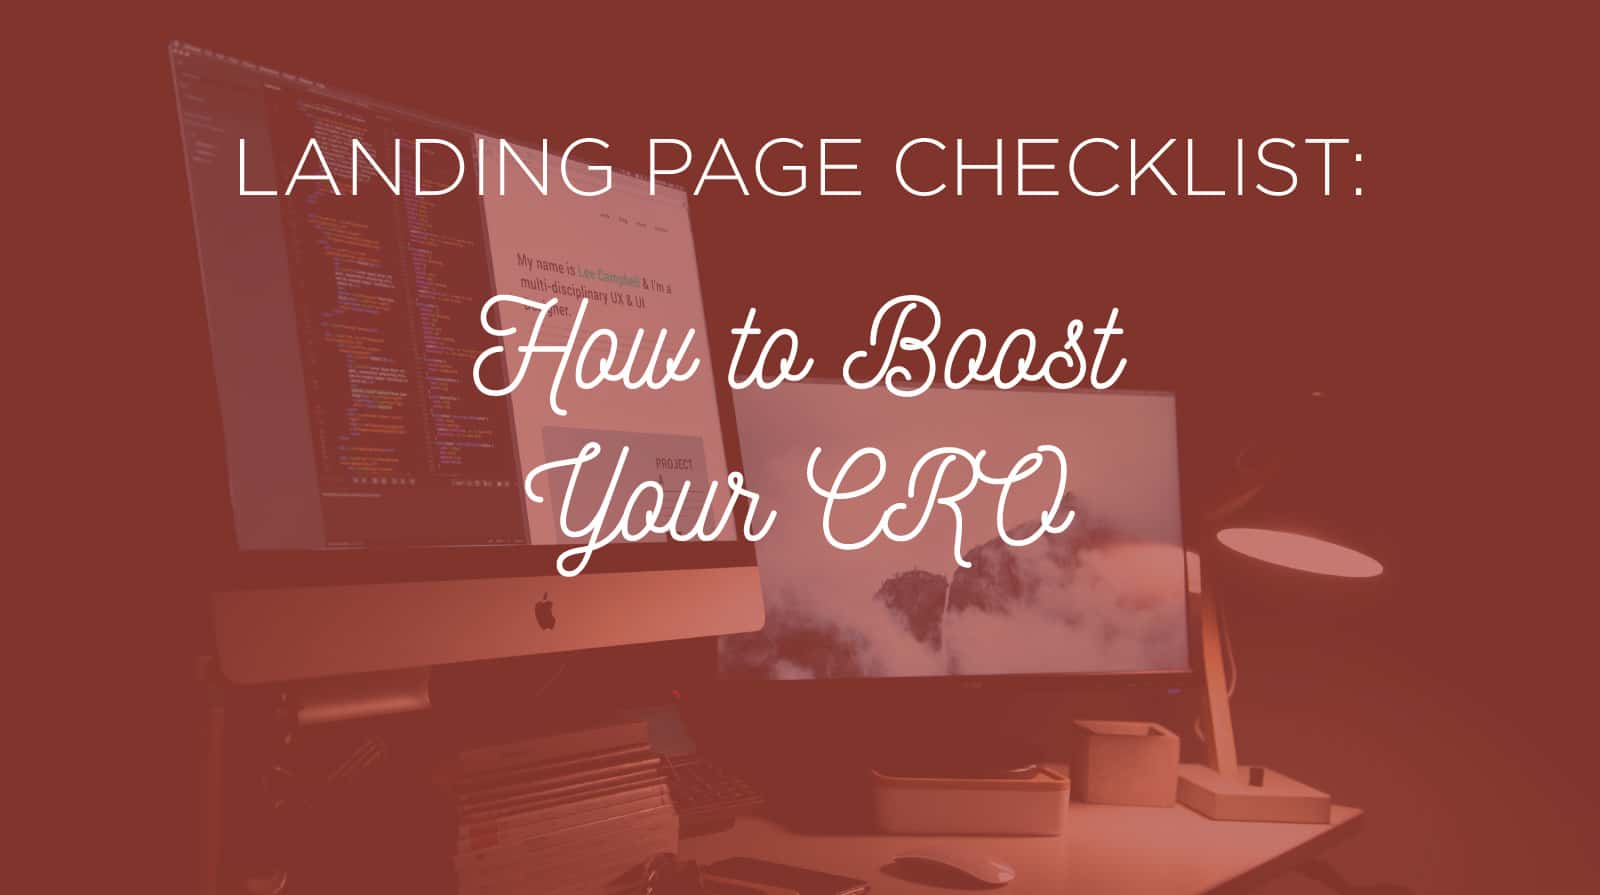 Landing Page Checklist: How to Boost Your CRO